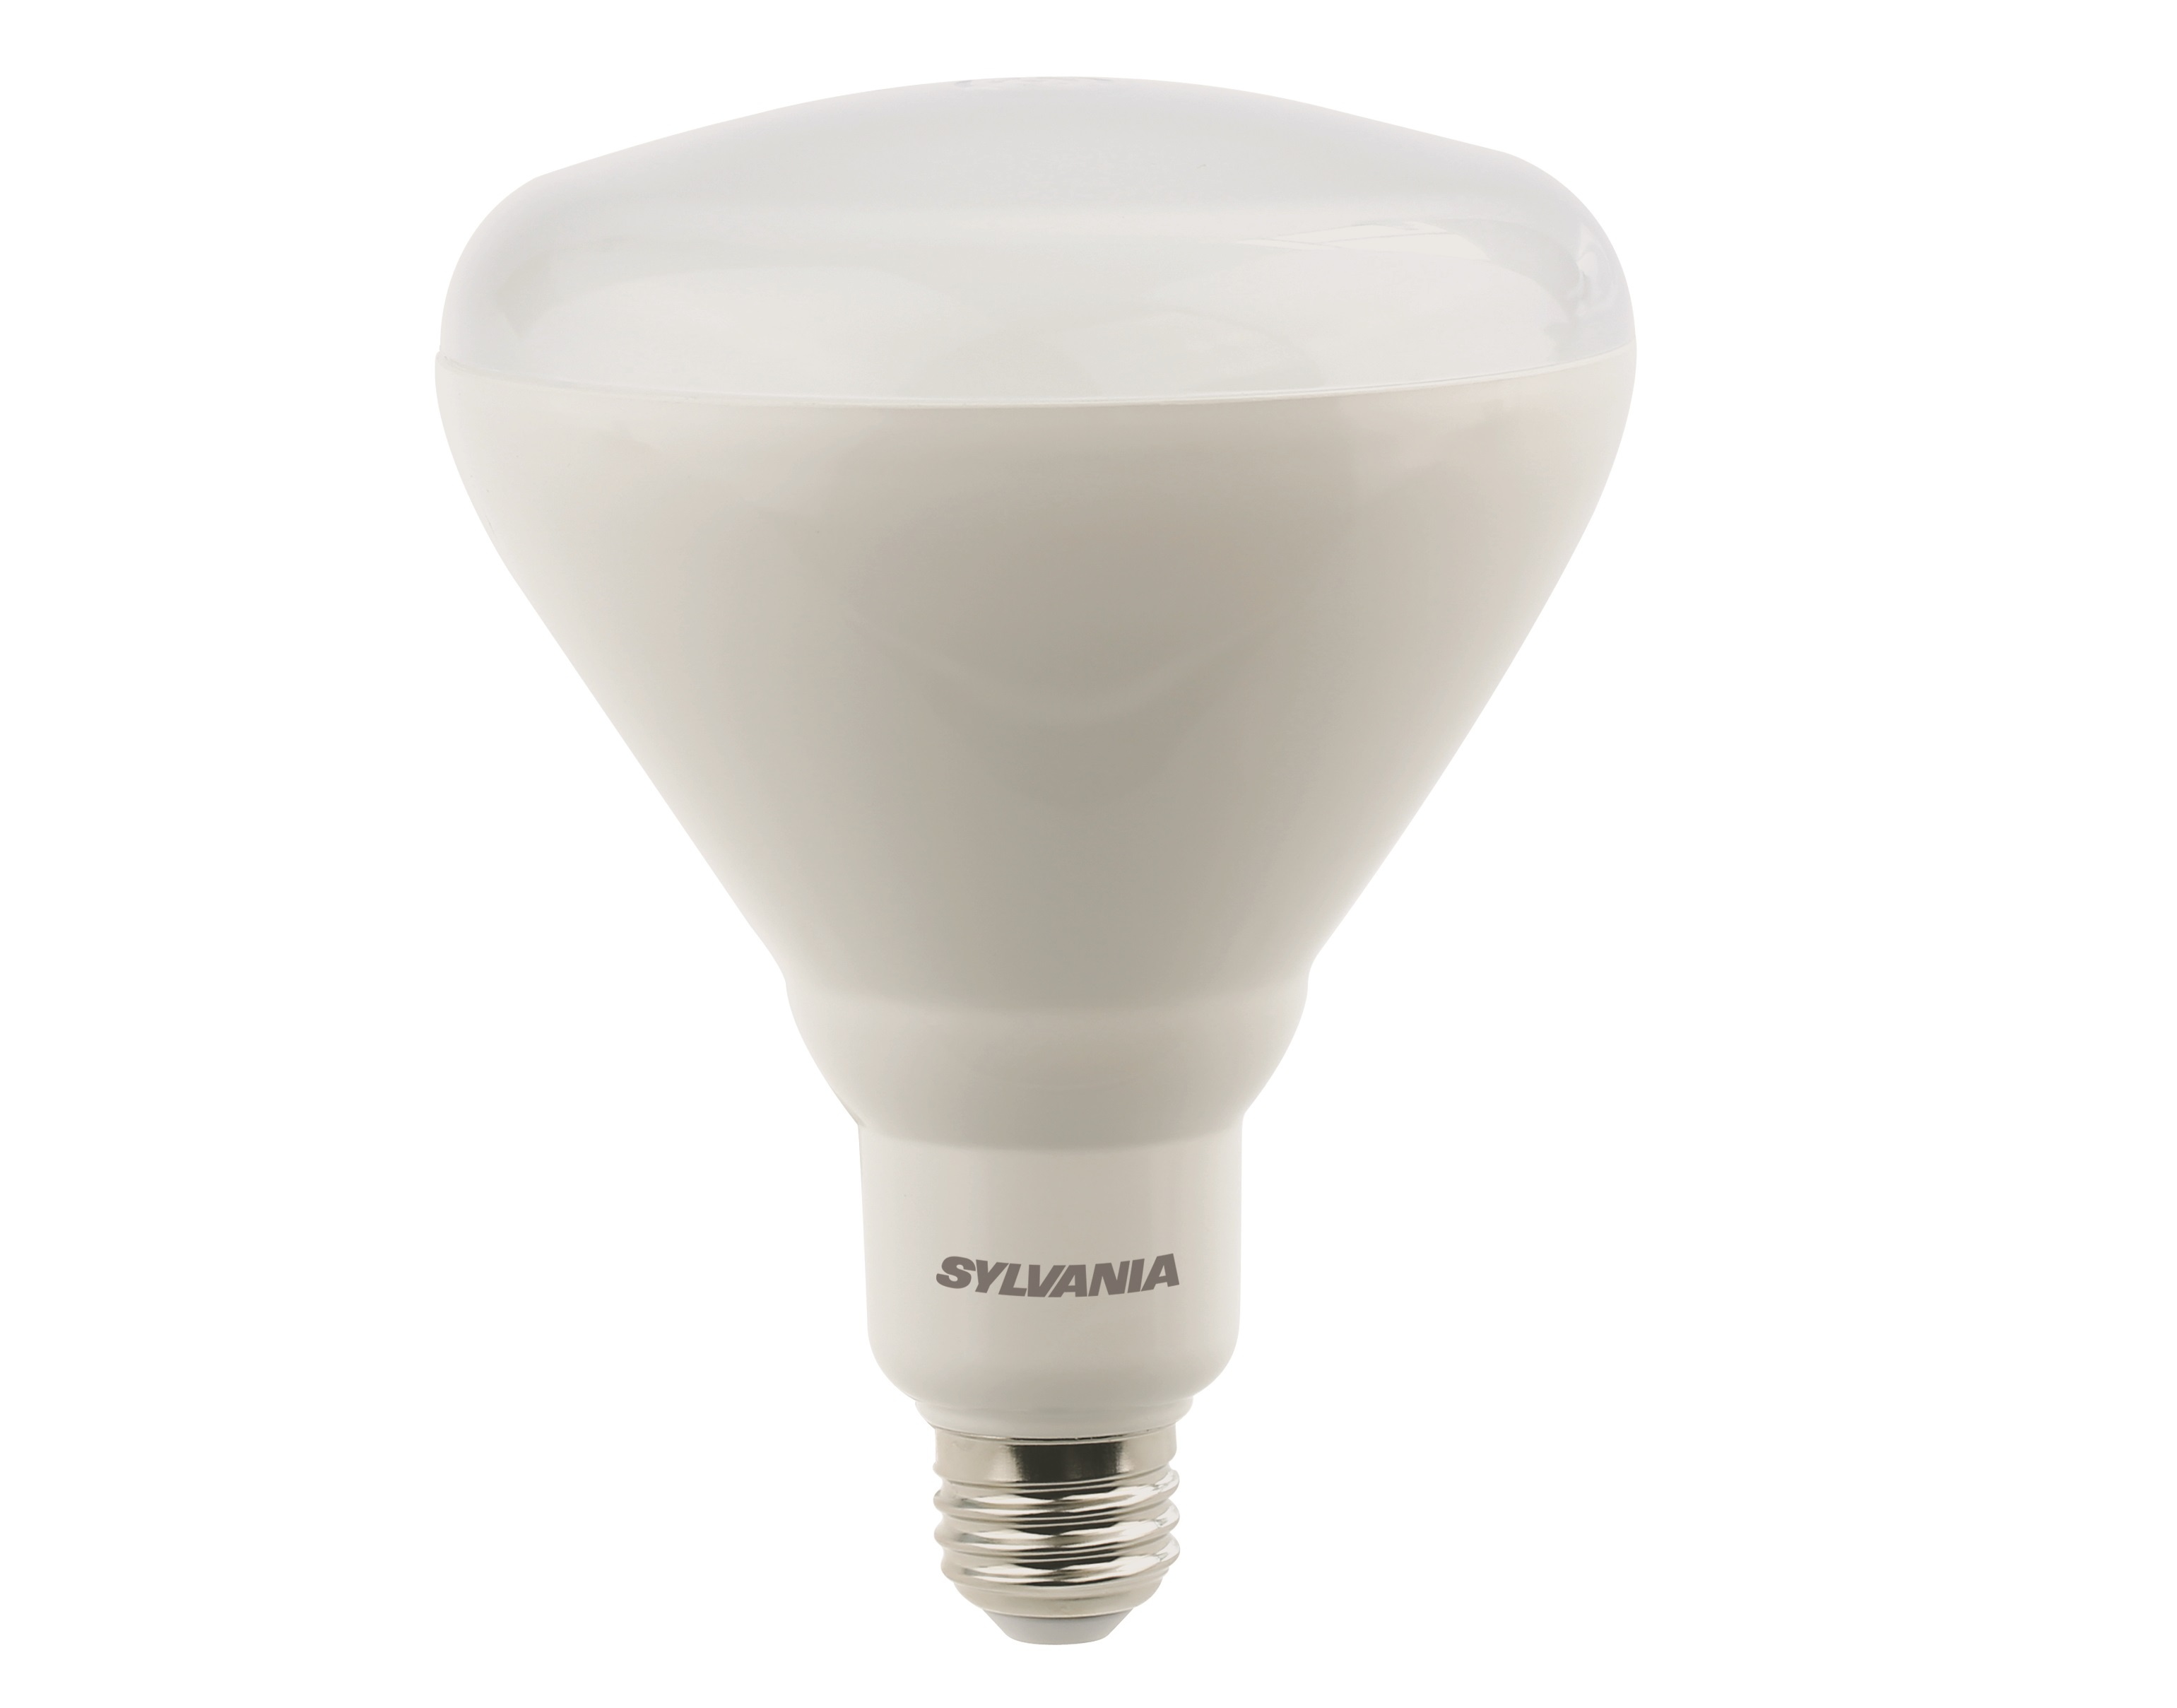 SYLVANIA GROLUX LED E27 VEGETATIVE